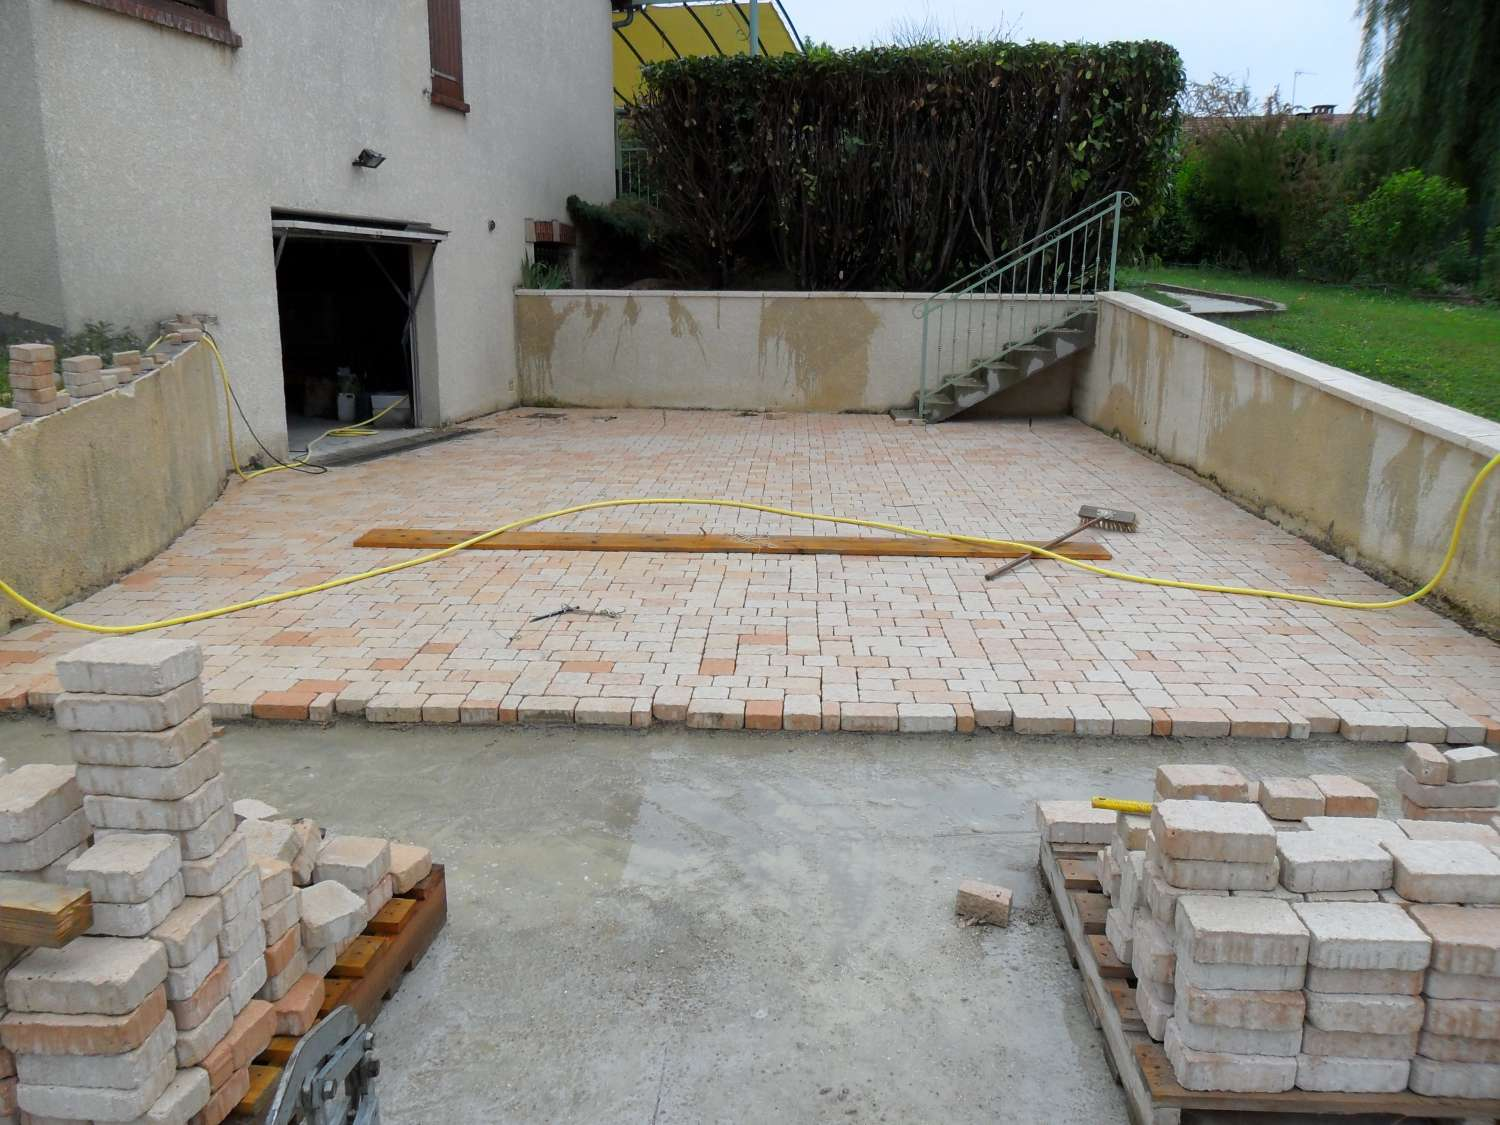 Cr ation am nagement ext rieur pictures to pin on pinterest for Pose de carrelage exterieur sur chape beton